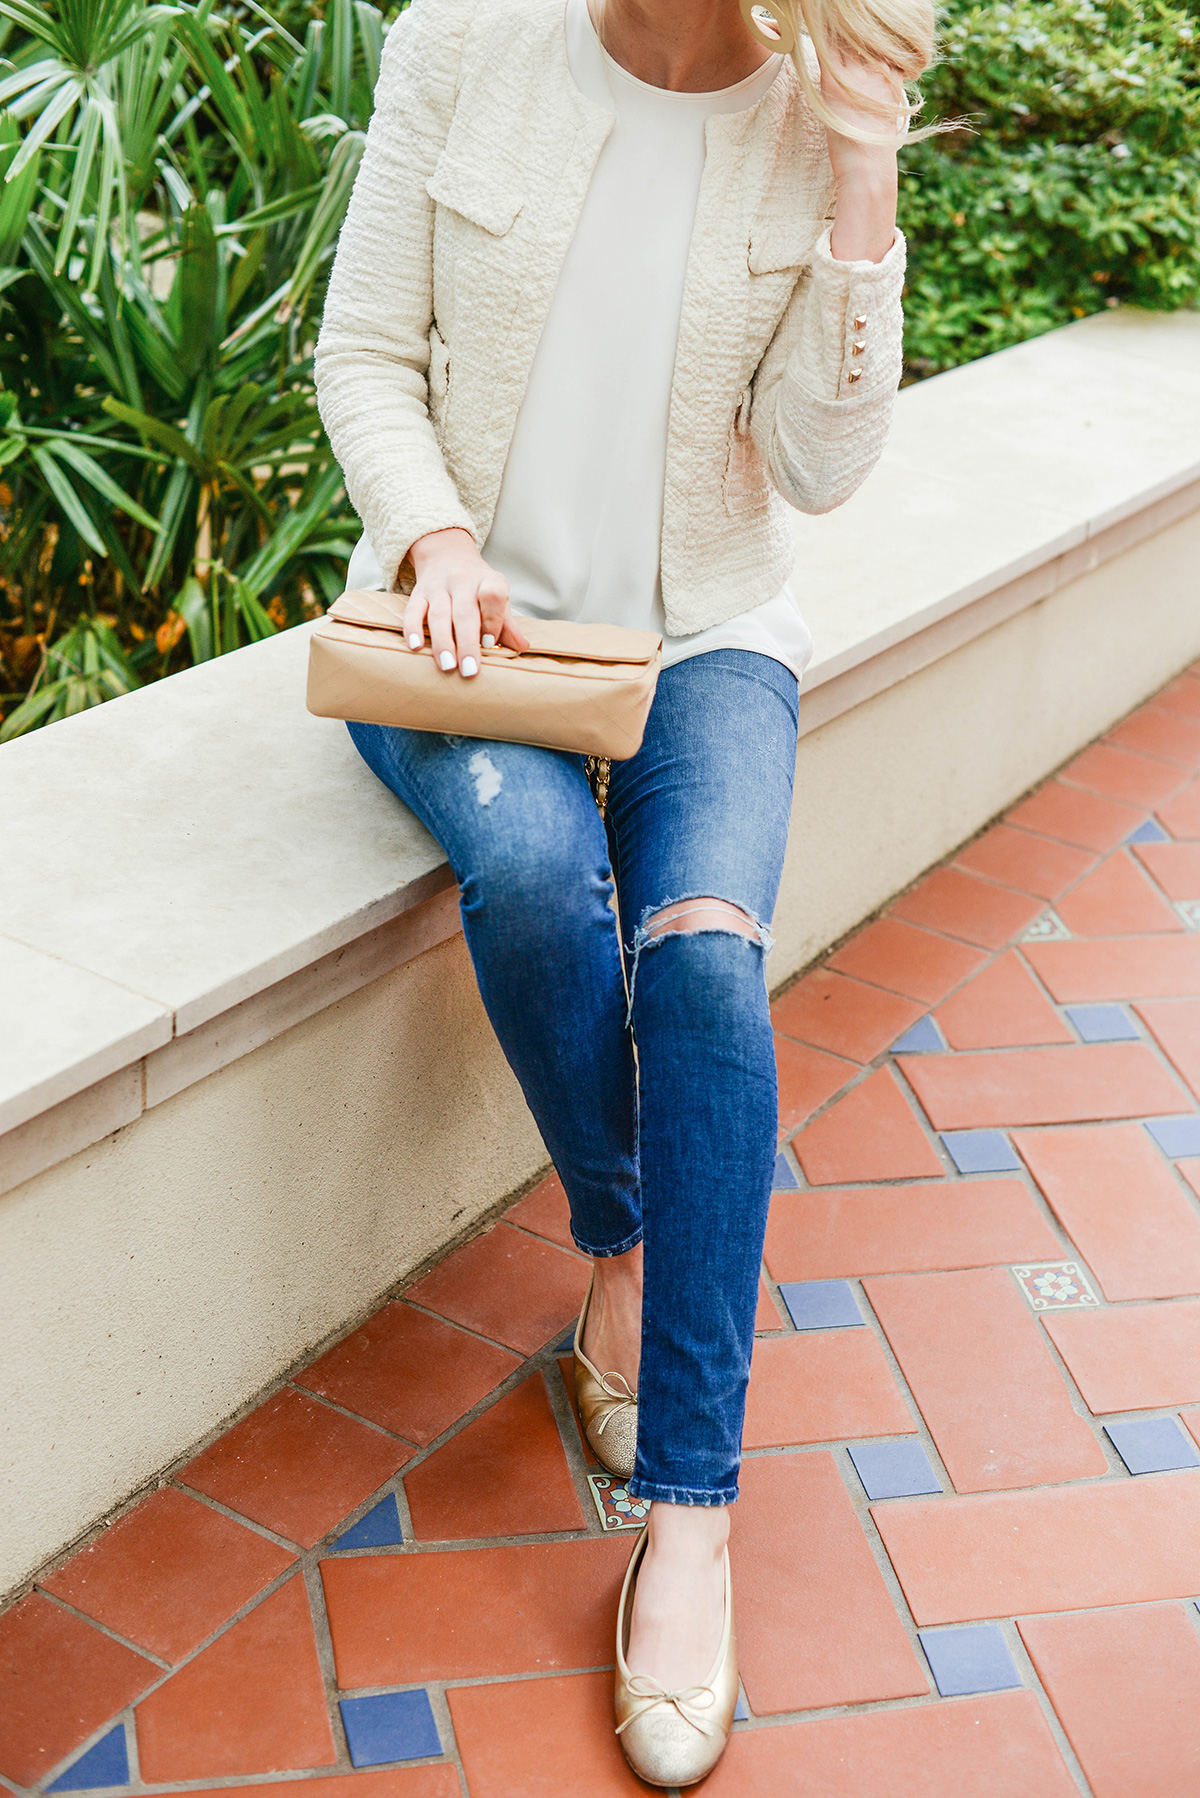 Gold Chanel Ballet Flats | The Style Scribe